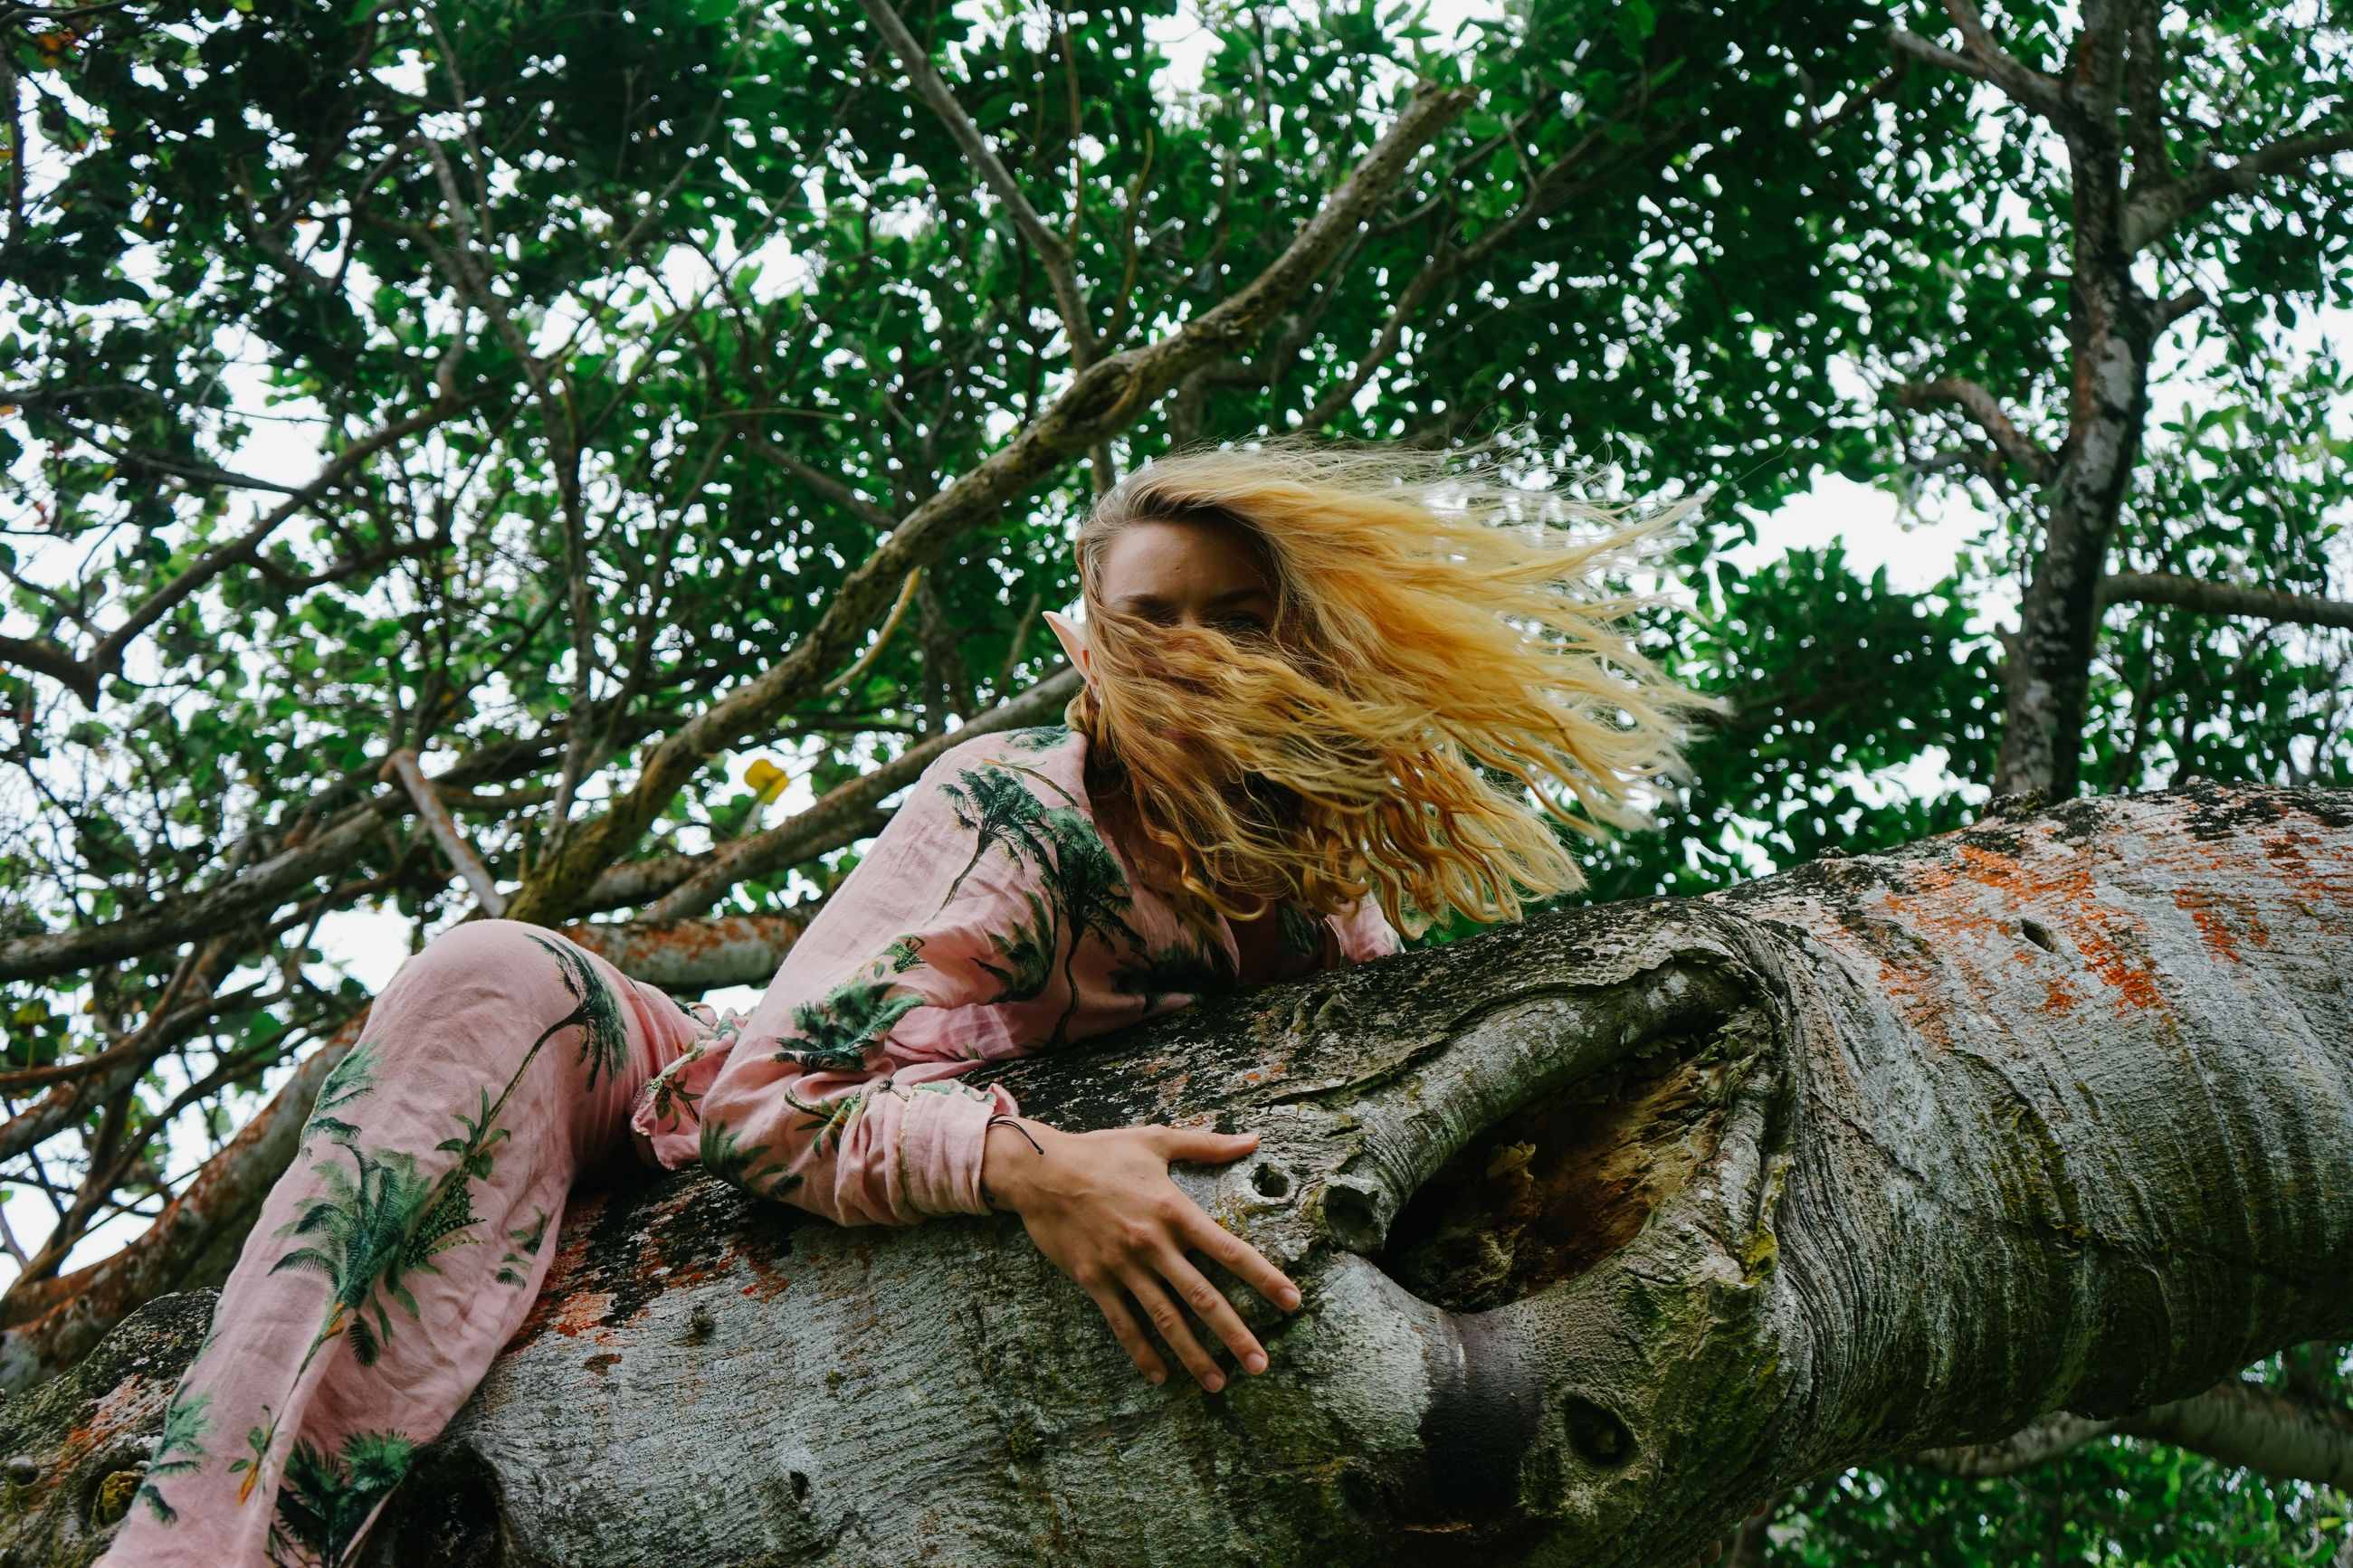 tree, plant, one person, forest, leisure activity, women, nature, adult, long hair, jungle, hairstyle, blond hair, lifestyles, young adult, casual clothing, day, flower, relaxation, outdoors, sitting, green, sunlight, natural environment, land, full length, person, spring, woodland, rainforest, growth, leaf, autumn, lying down, tree trunk, three quarter length, female, branch